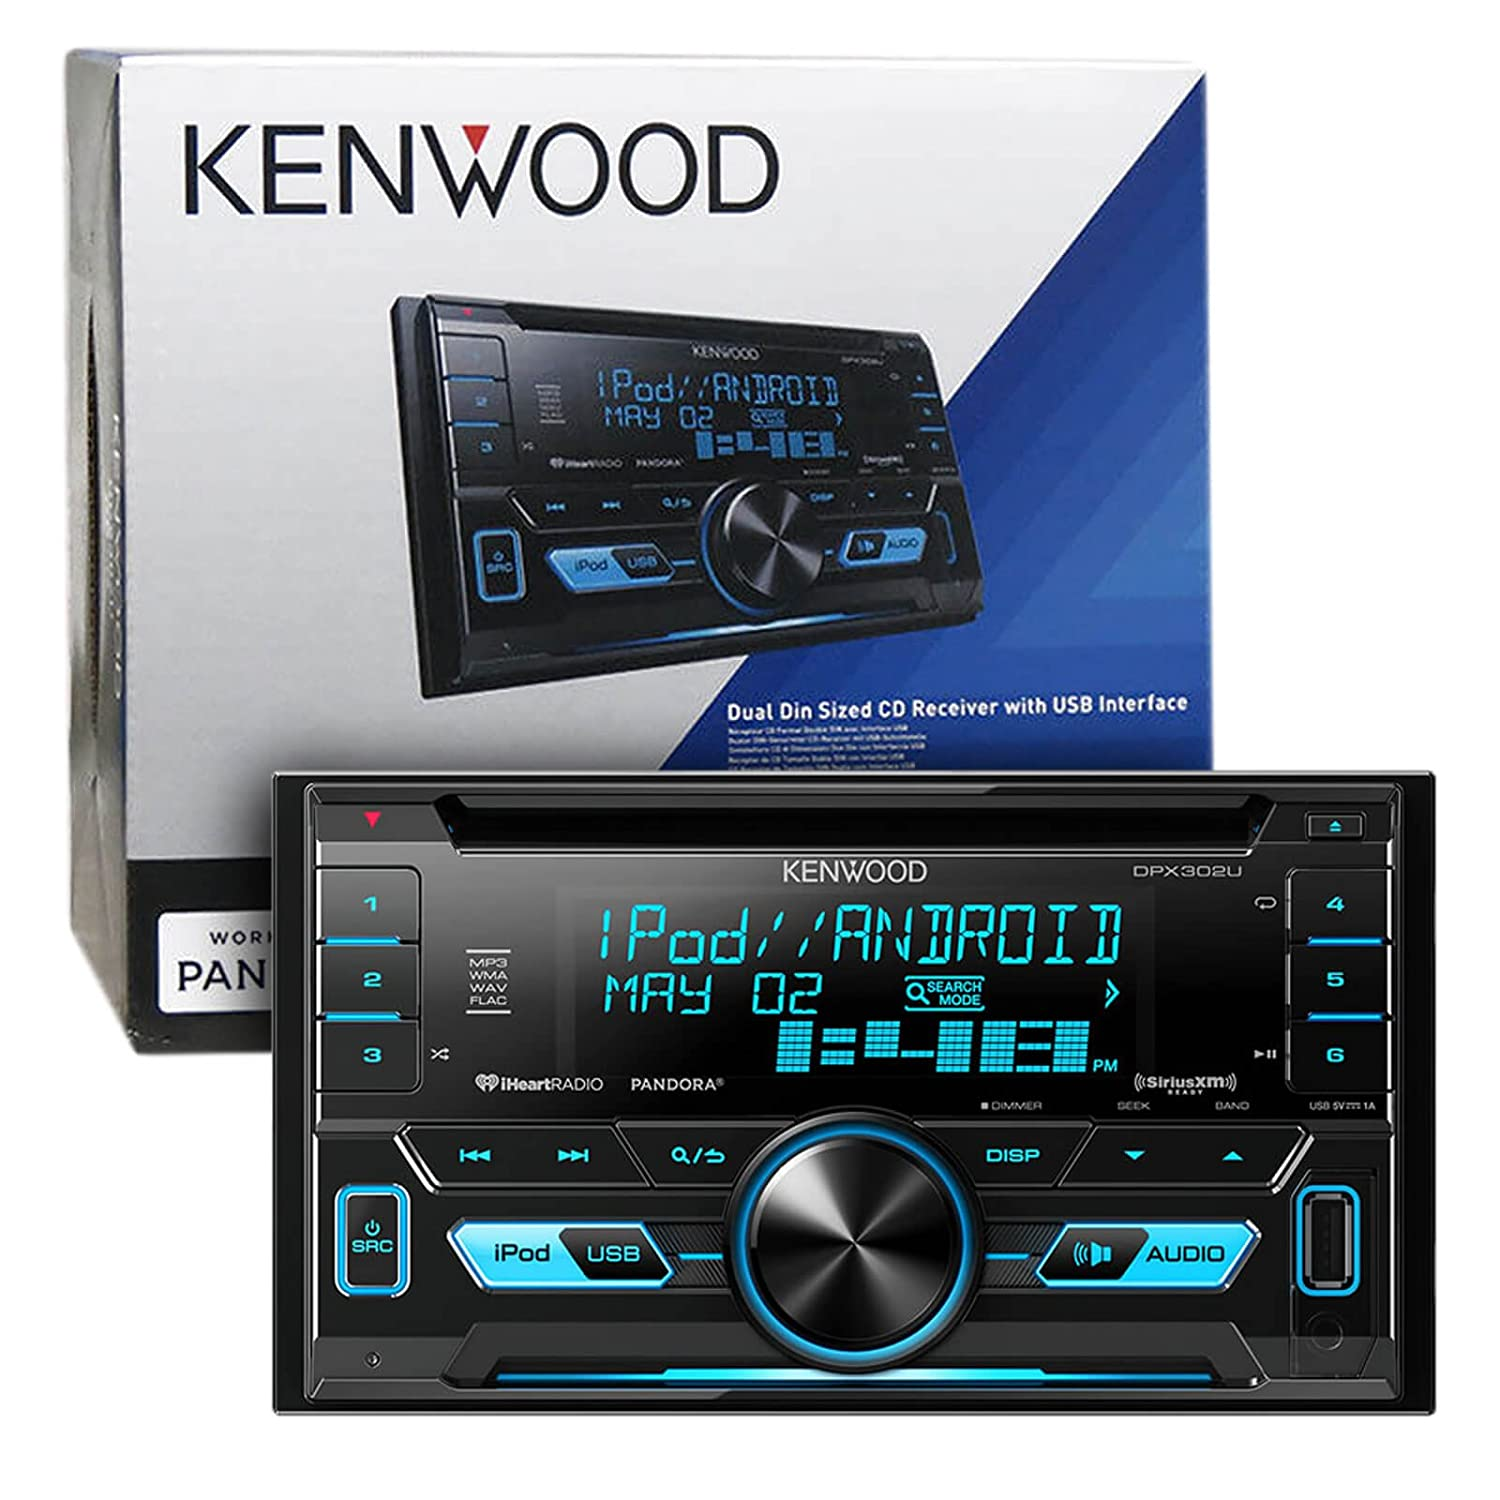 Kenwood Dpx302u Double 2 Din Cd Mp3 Car Stereo Receiver Wiring Harness Adapter Bundle Combo With Metra Installation Kit For Fits Most Gm Vehicles Wire